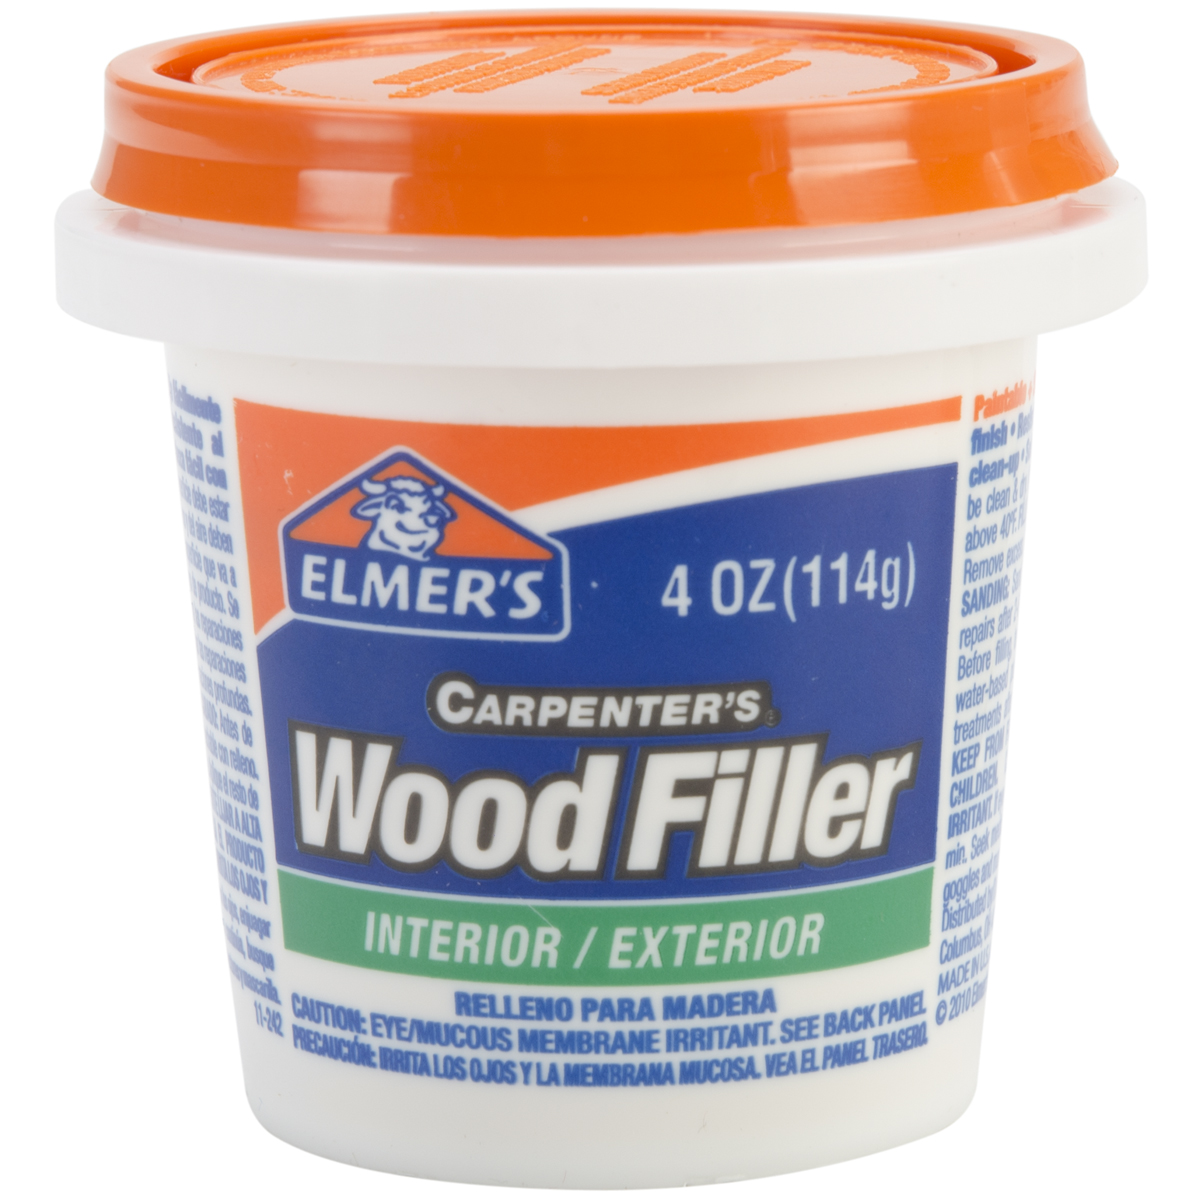 Elmer\u0027s Carpenter\u0027s Wood Filler Interior/Exterior